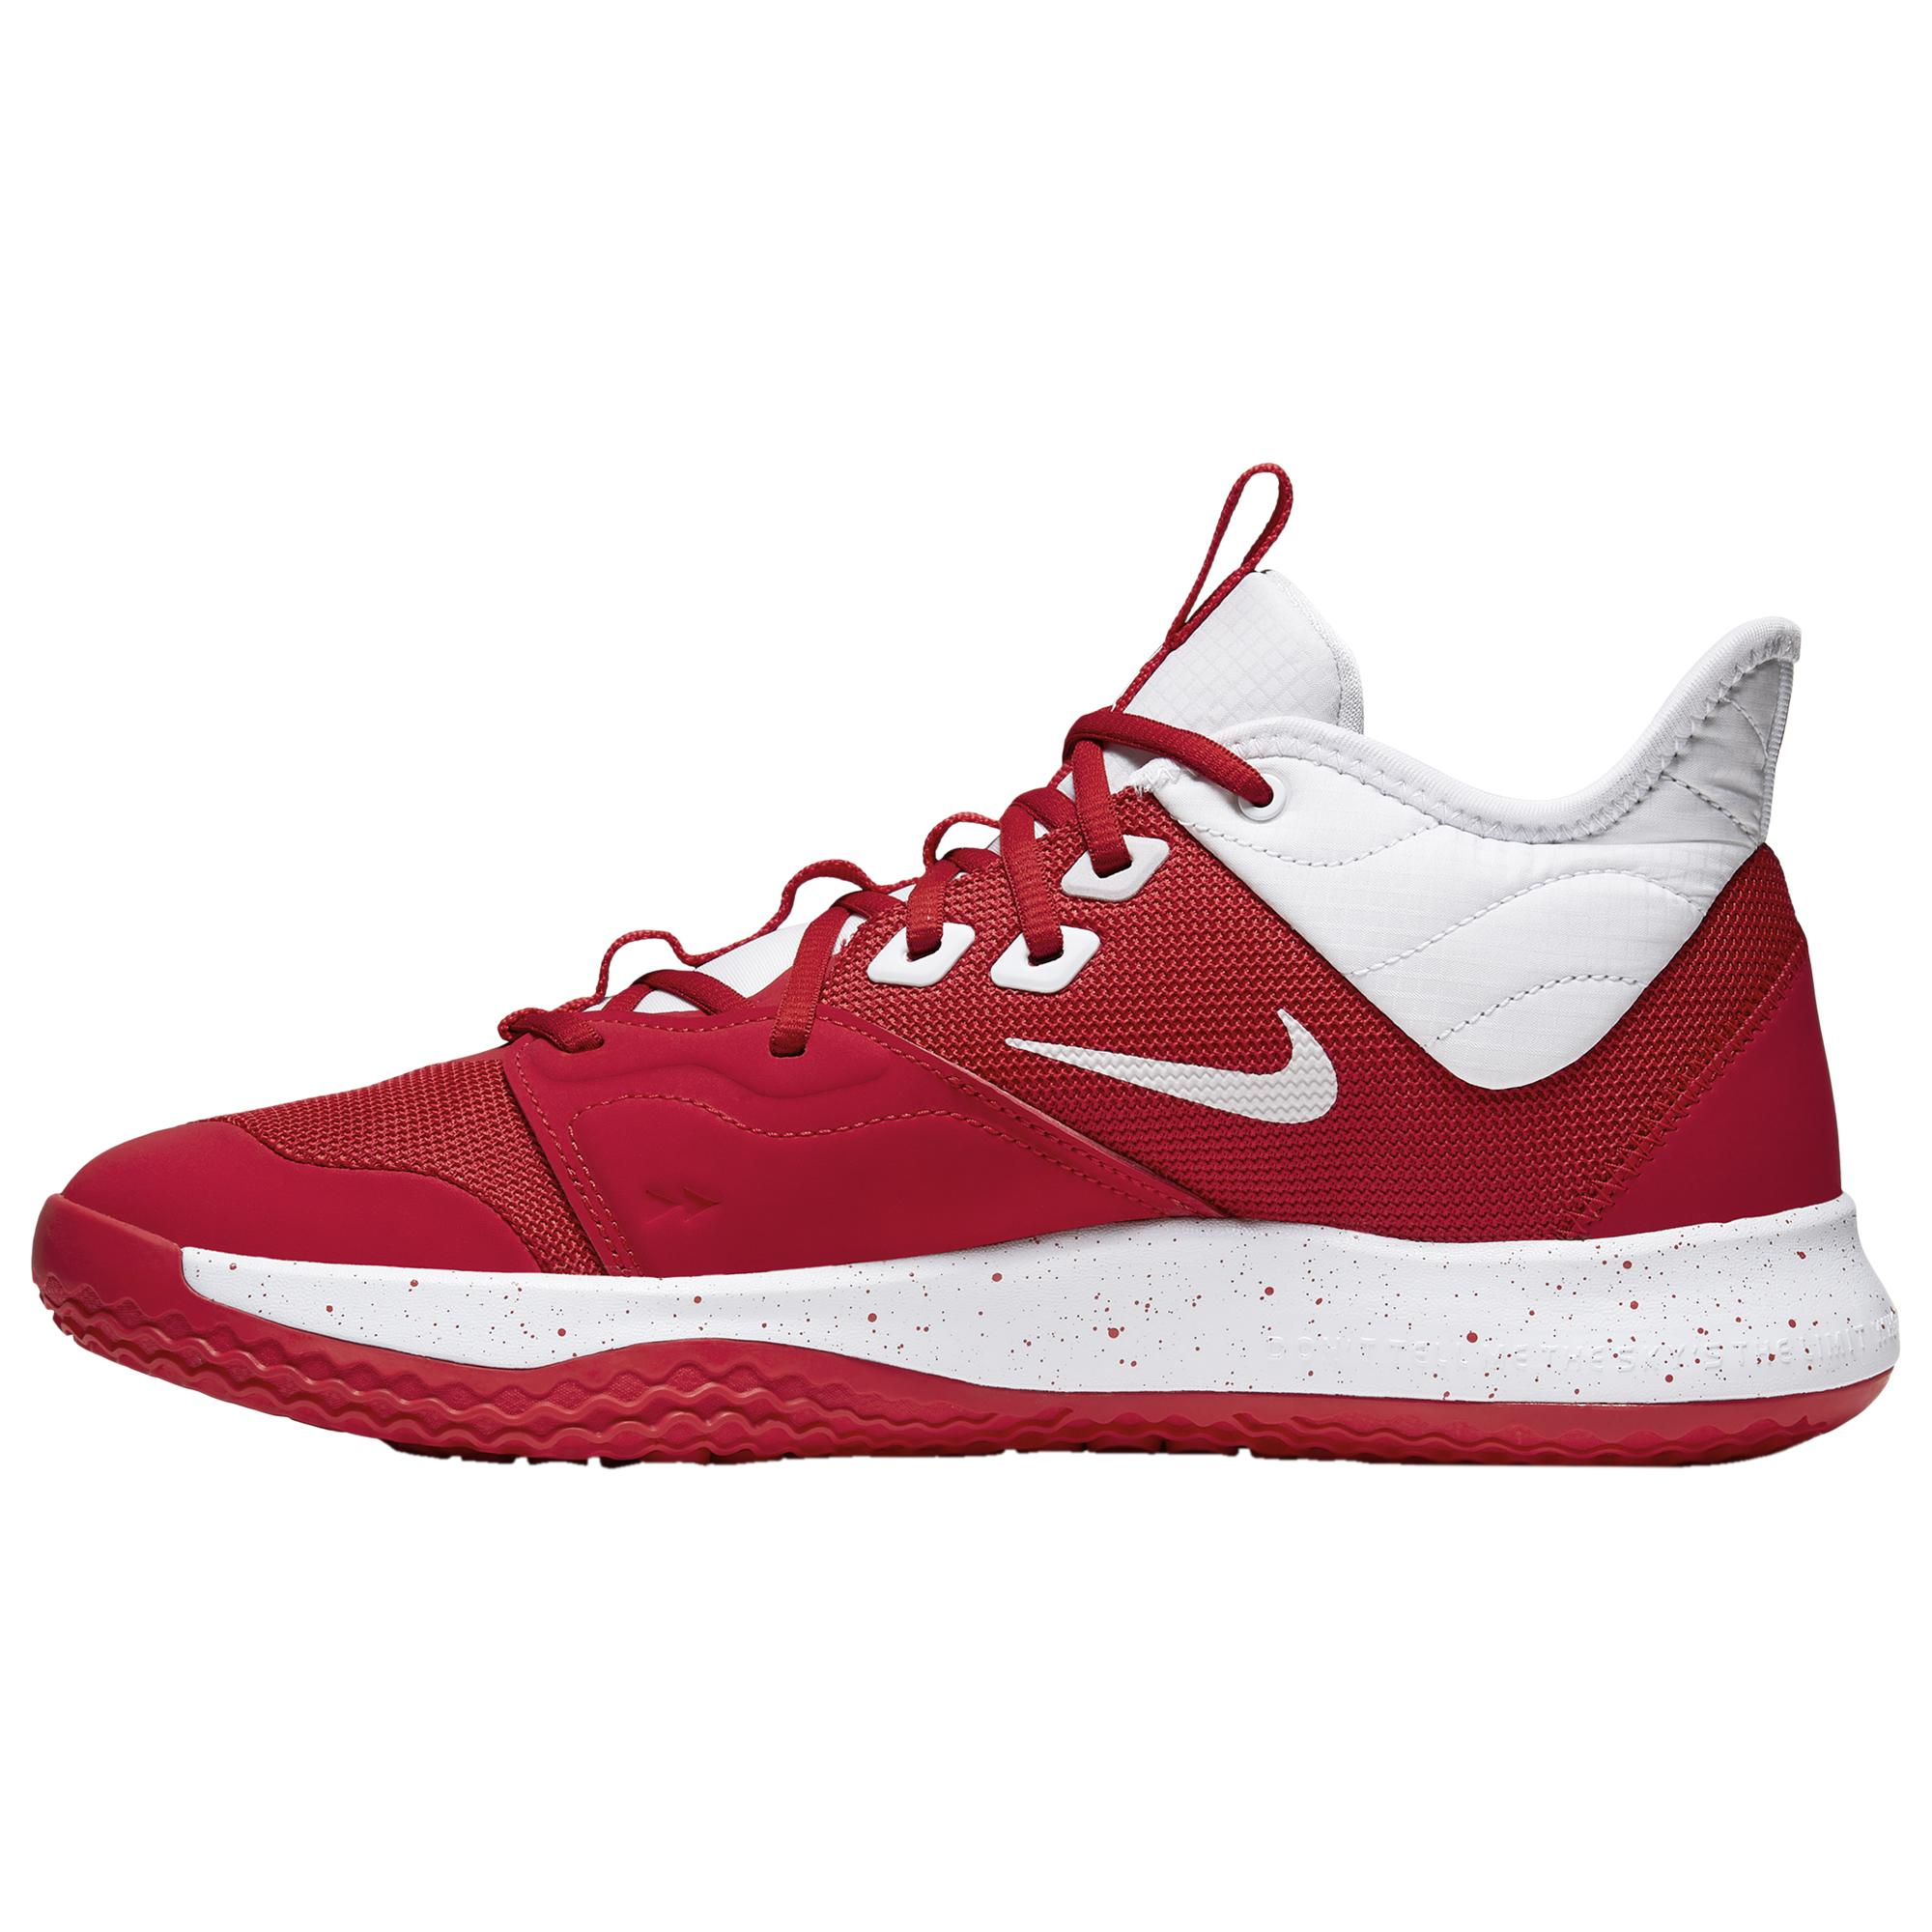 pretty cheap classic shoes best Nike Synthetic Pg 3 (team) Basketball Shoe in University Red/White ...